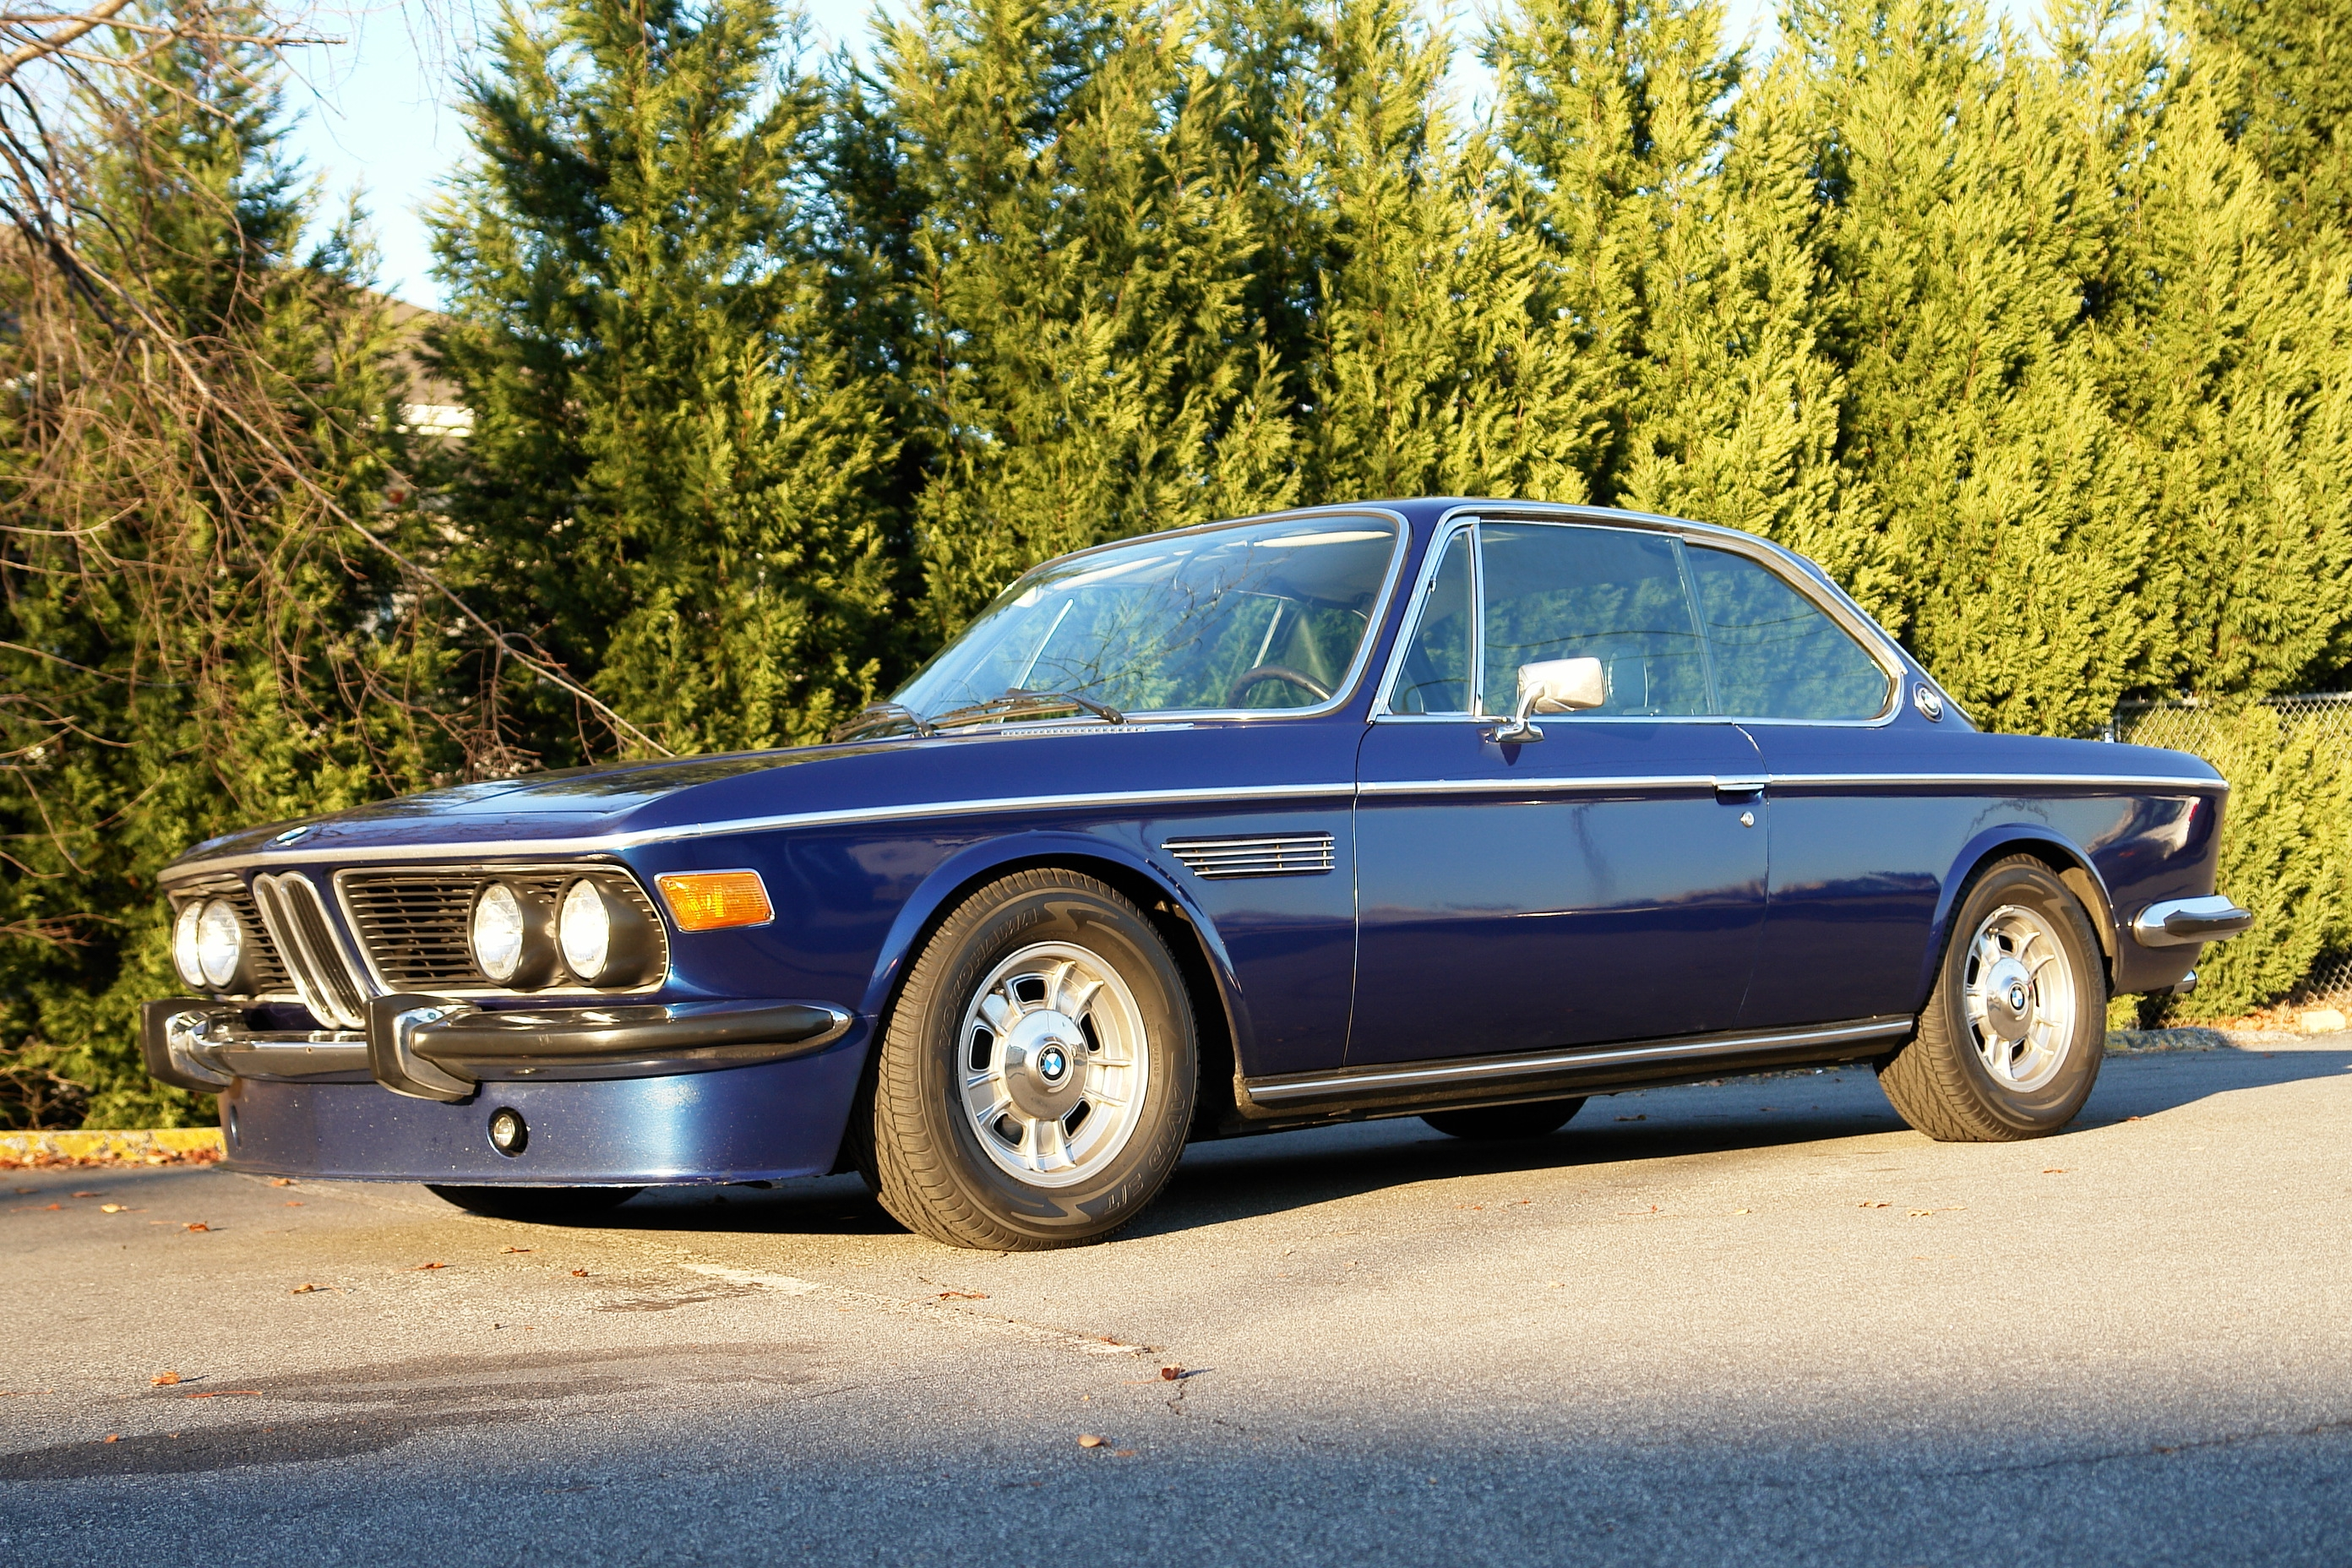 69brrrd 1972 BMW 3.0CSI 14154572